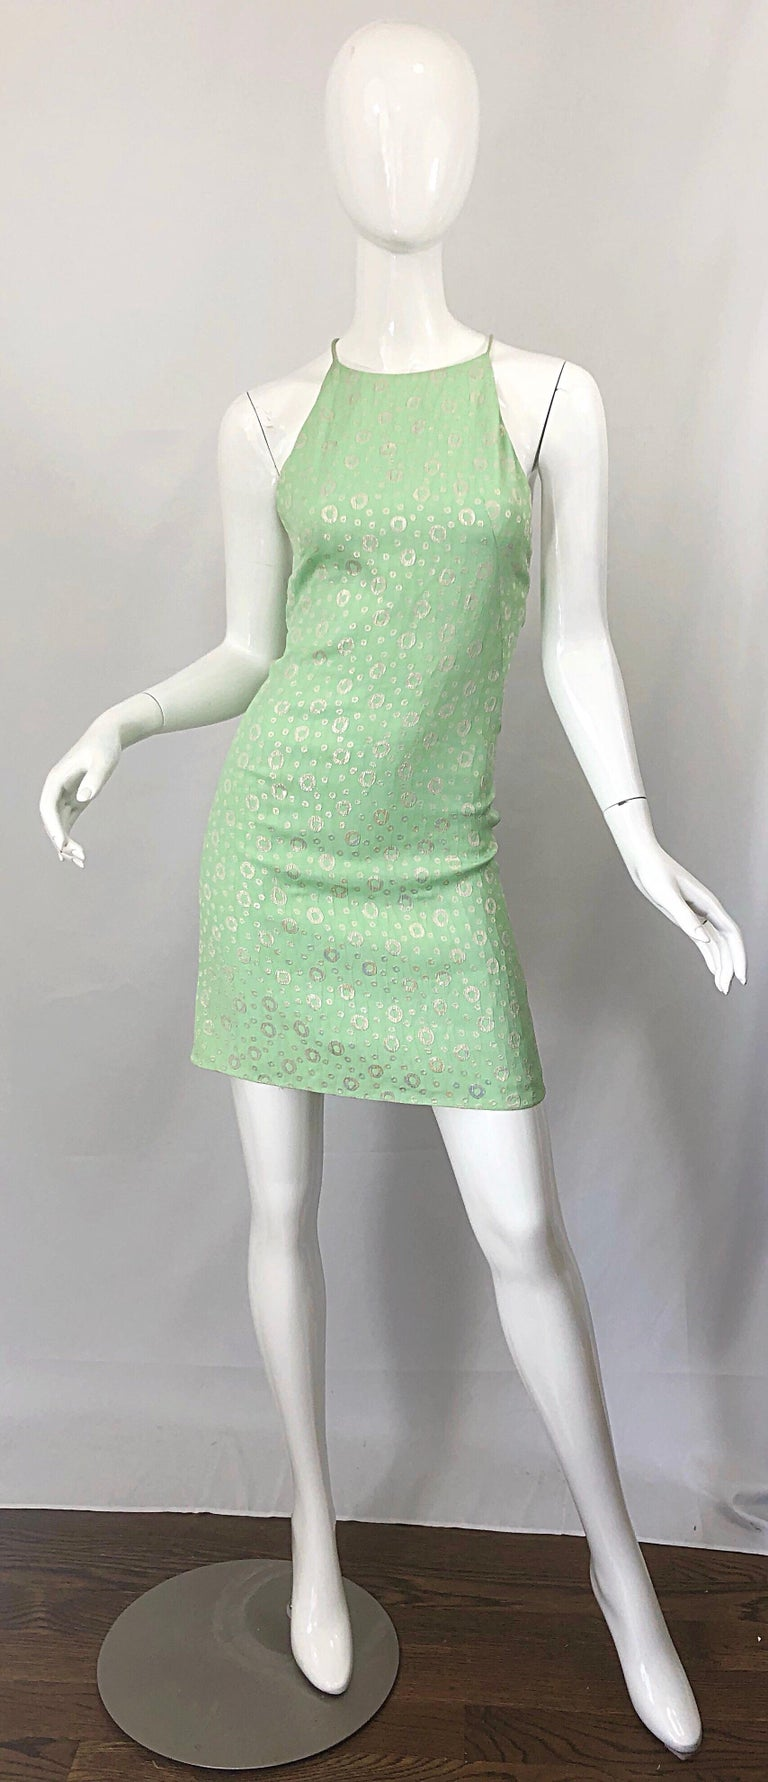 Chic brand new with tags ( NWT ) JAMES PURCELL couture quality silk sherbert mint green and gold silk racer back mini dress! Features a luxurious silk, with plastic pvc covered clear racerback straps. Hidden zipper up the back with hook-and-eye